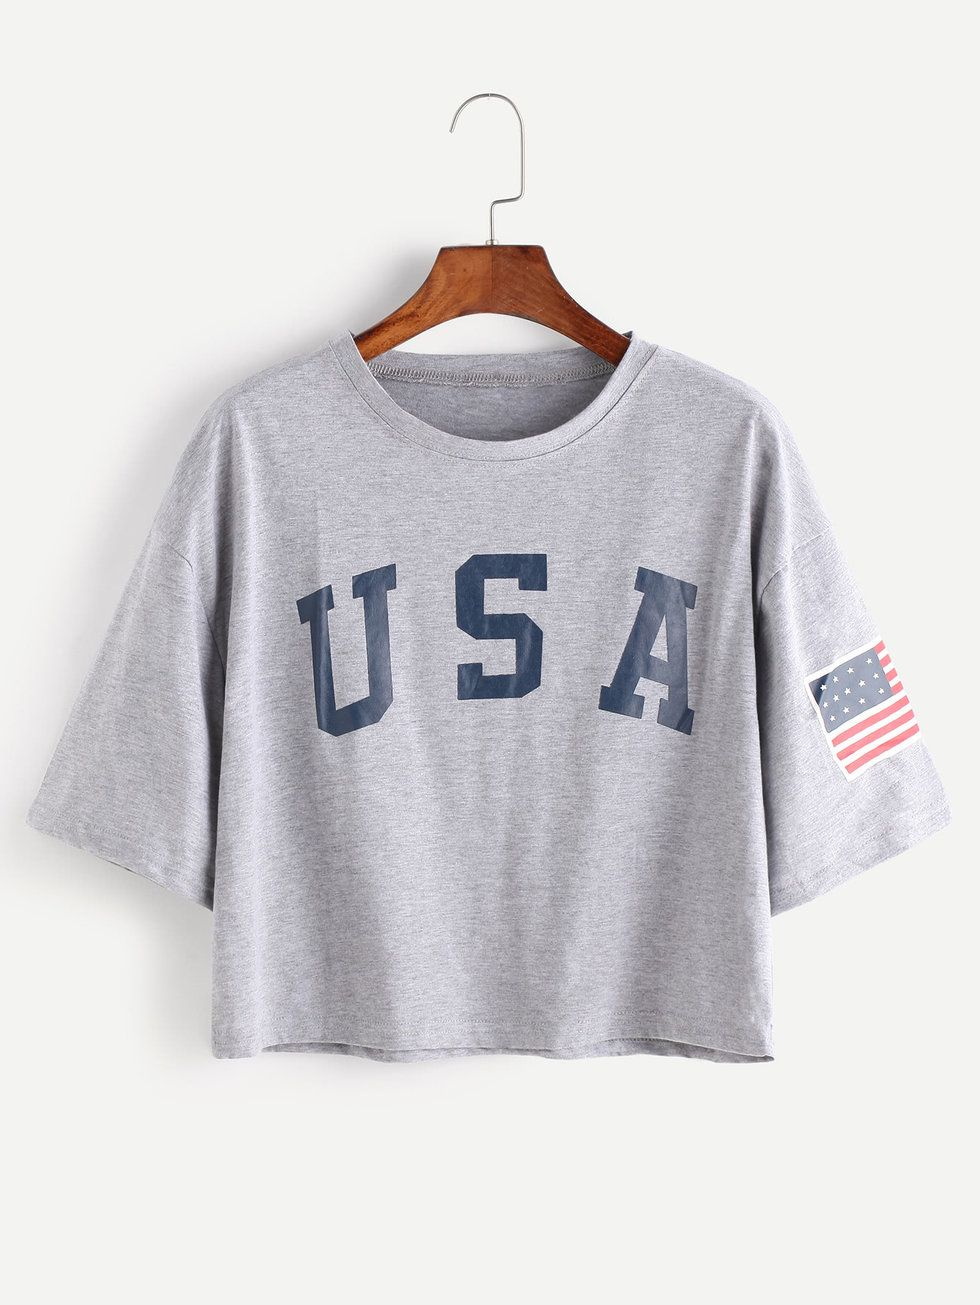 e261a92f8b 8 Romwe Tops Under $9 Every College Girl Needs To Complete Her ...